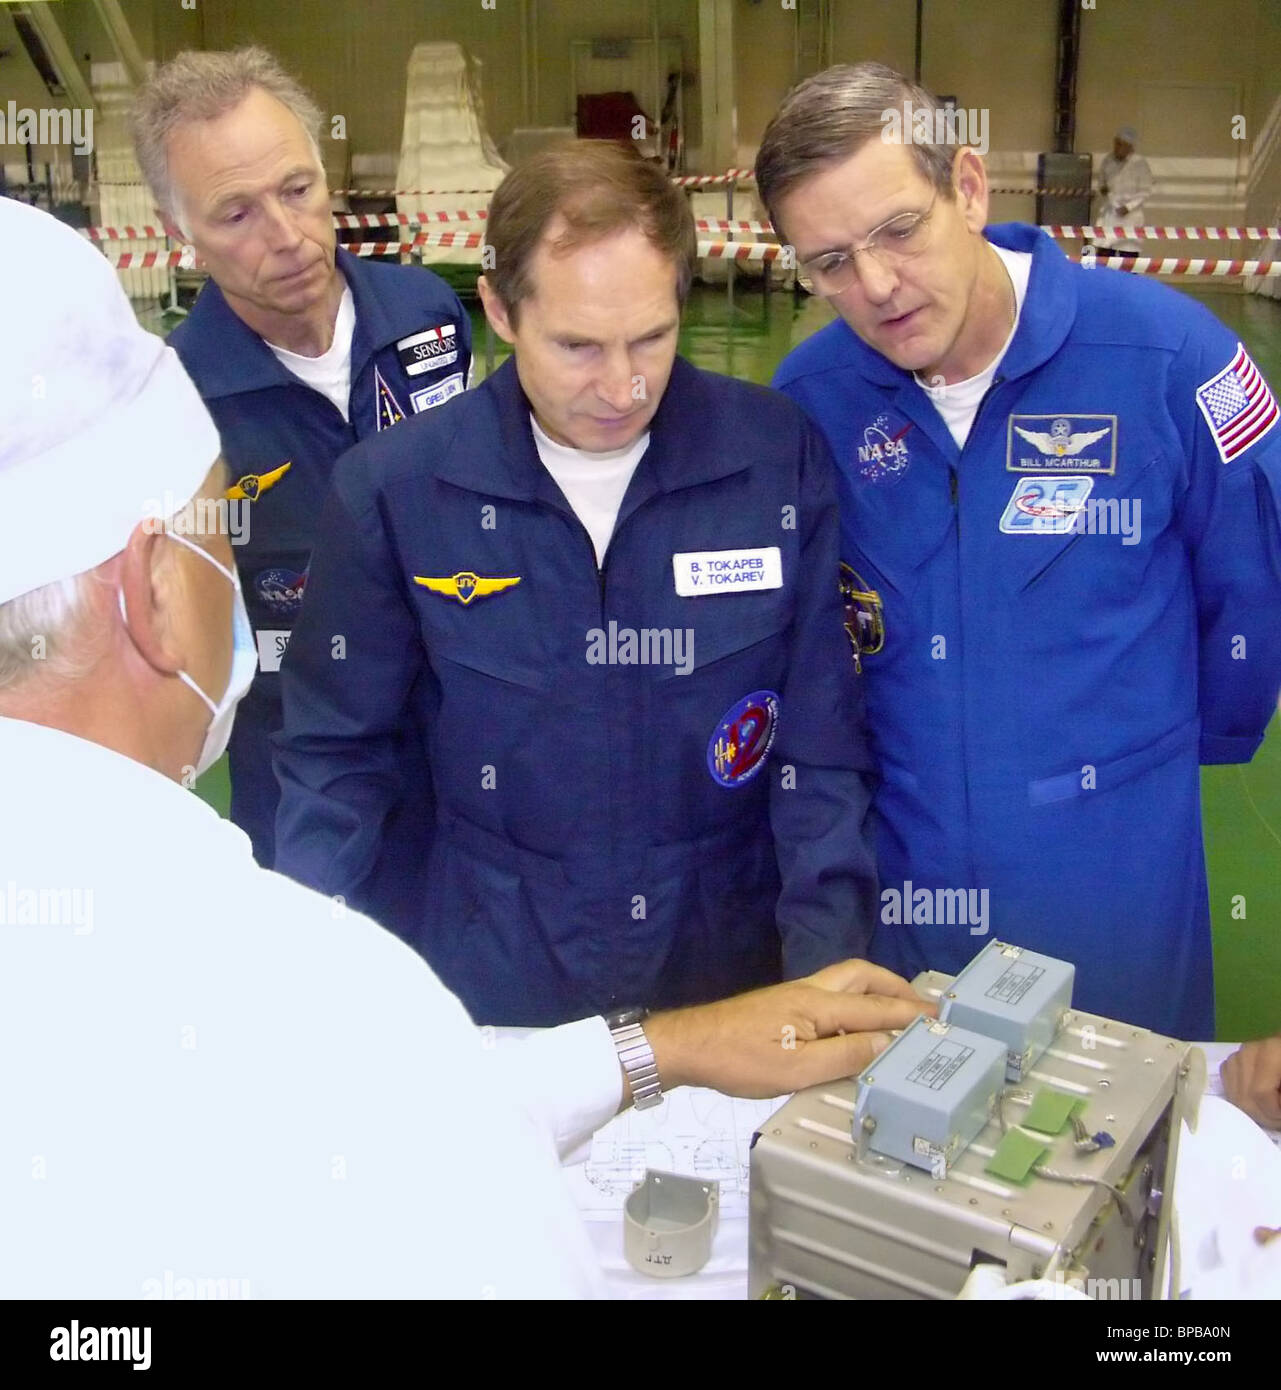 Crew of 12th mission to ISS hold training session at Baikonur cosmodrome - Stock Image